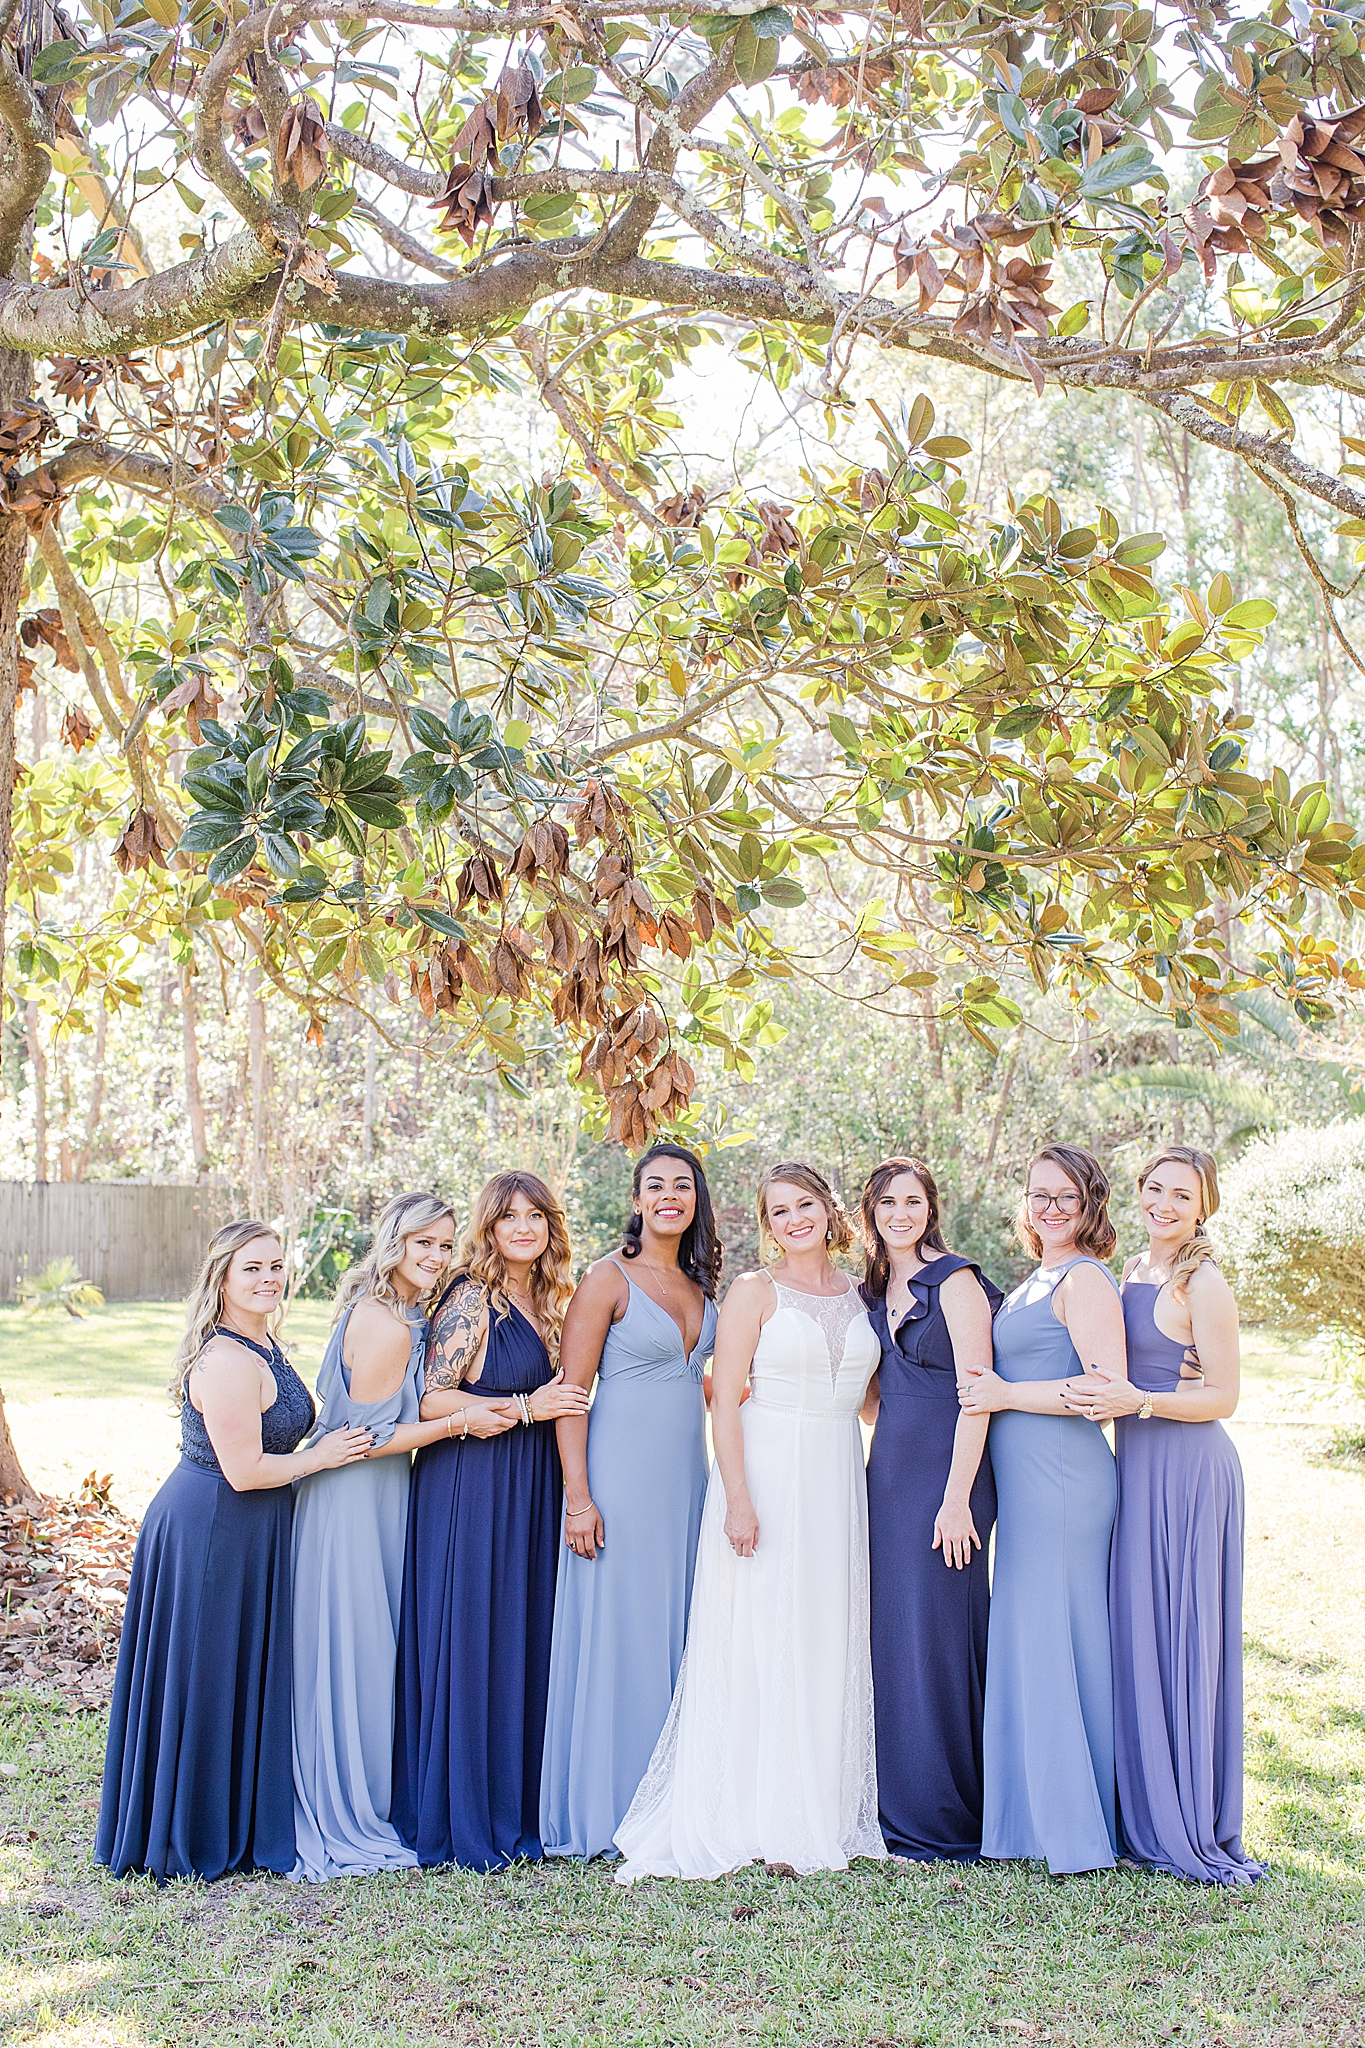 bride poses with bridesmaids in blue gowns